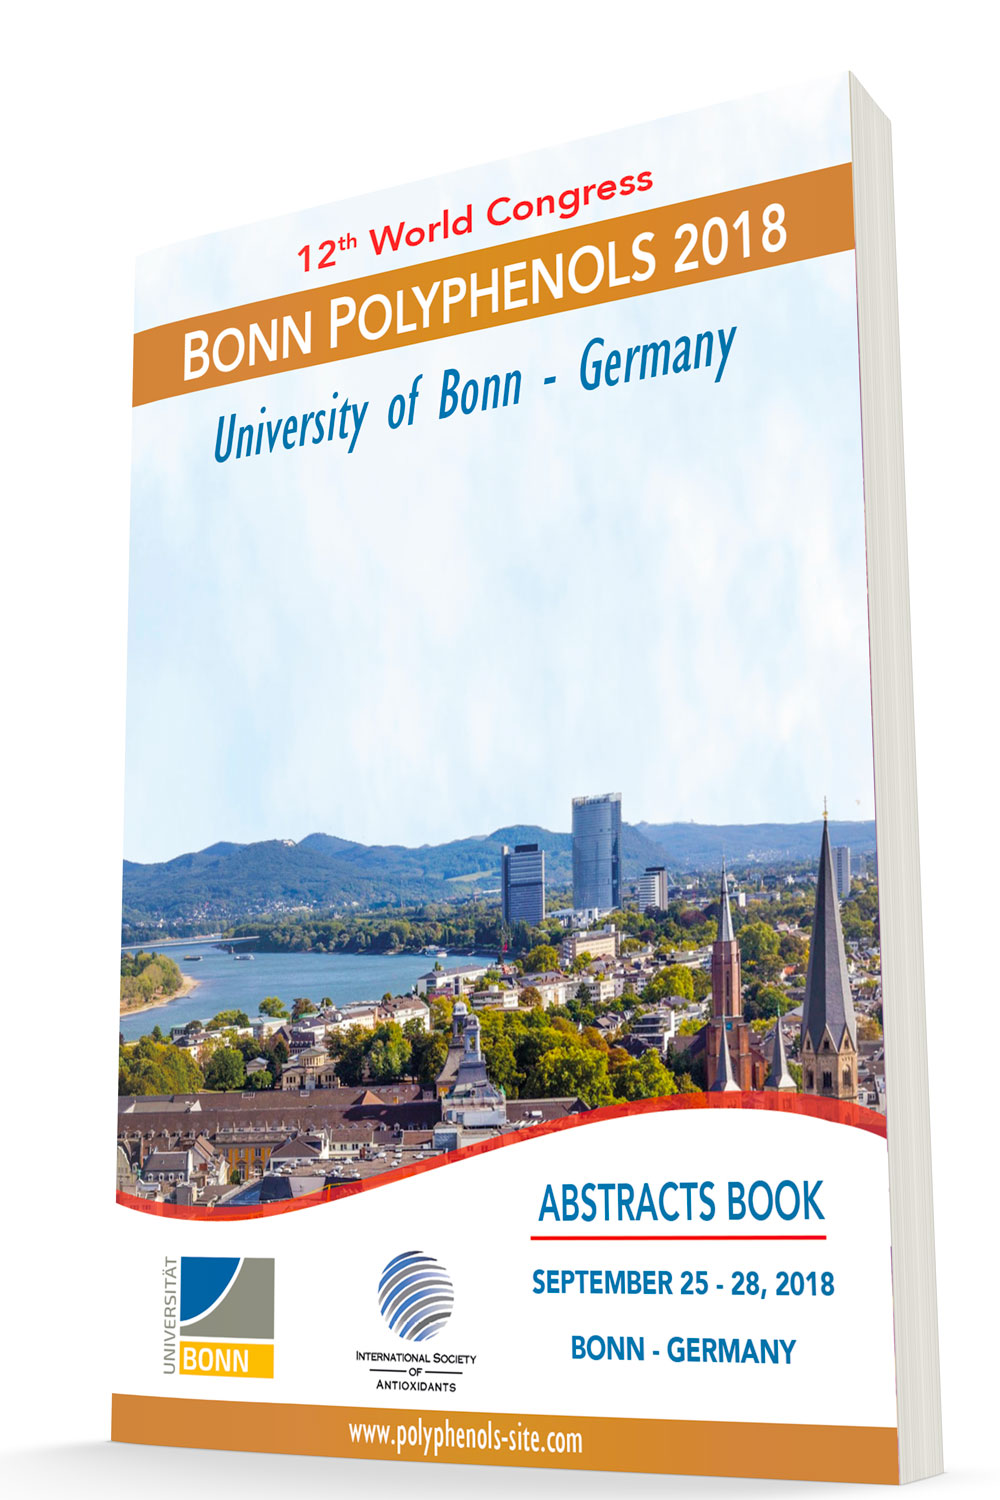 Bonn-Polyphenols-2018-Abstracts-Book-3D